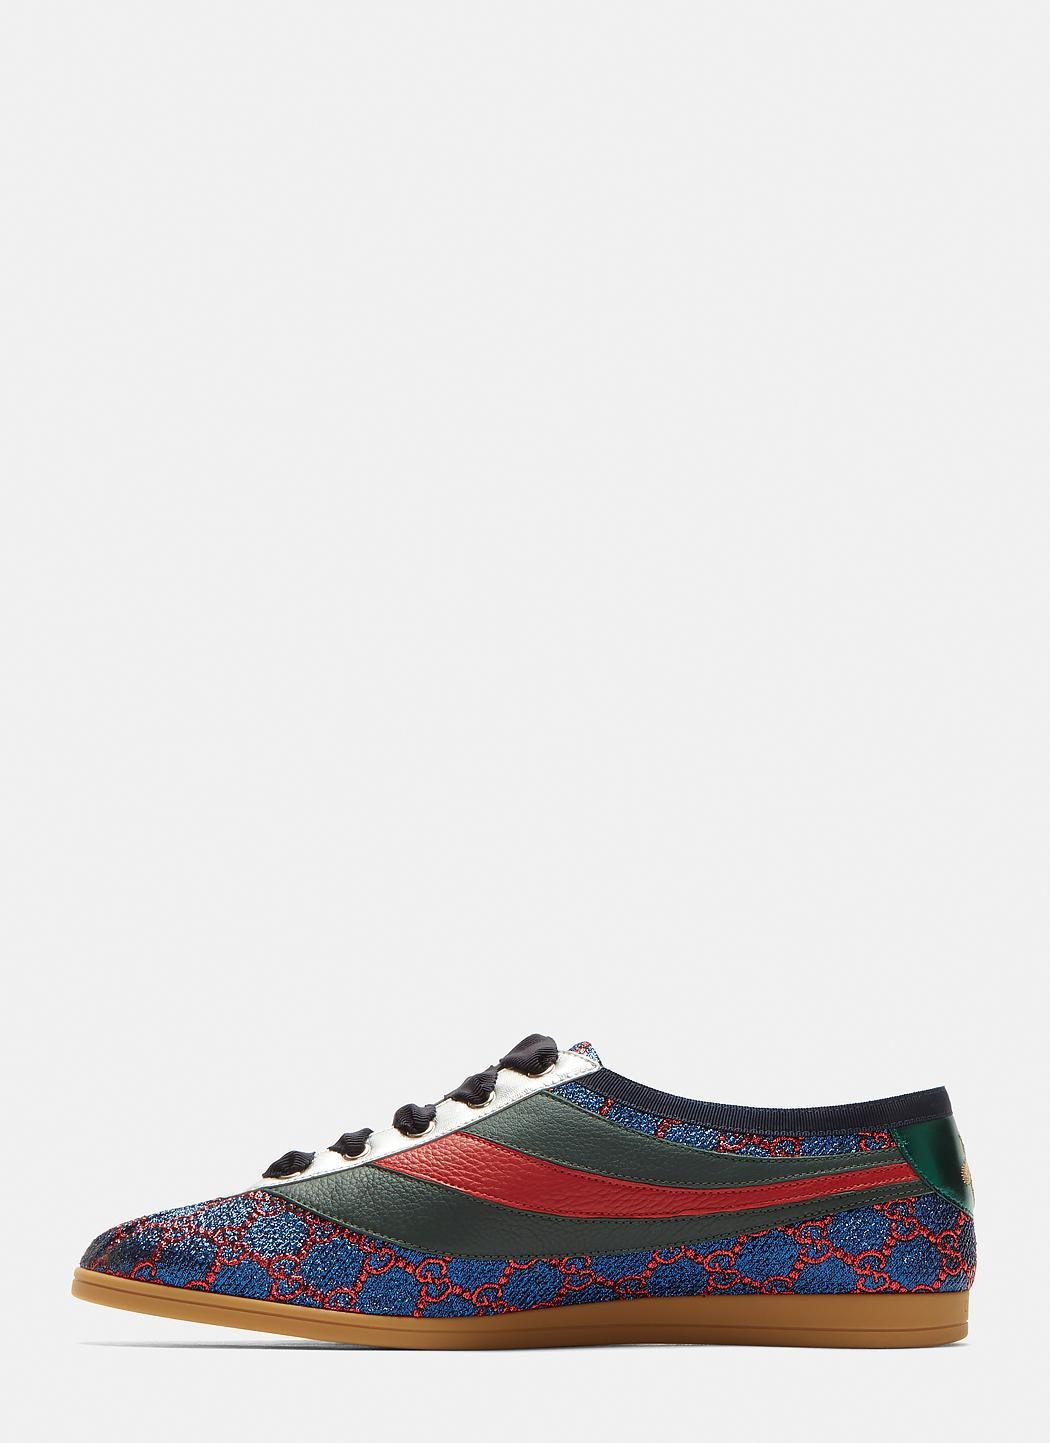 f175cdf84 Gucci Falacer Lurex GG Sneaker With Web in Blue for Men - Lyst